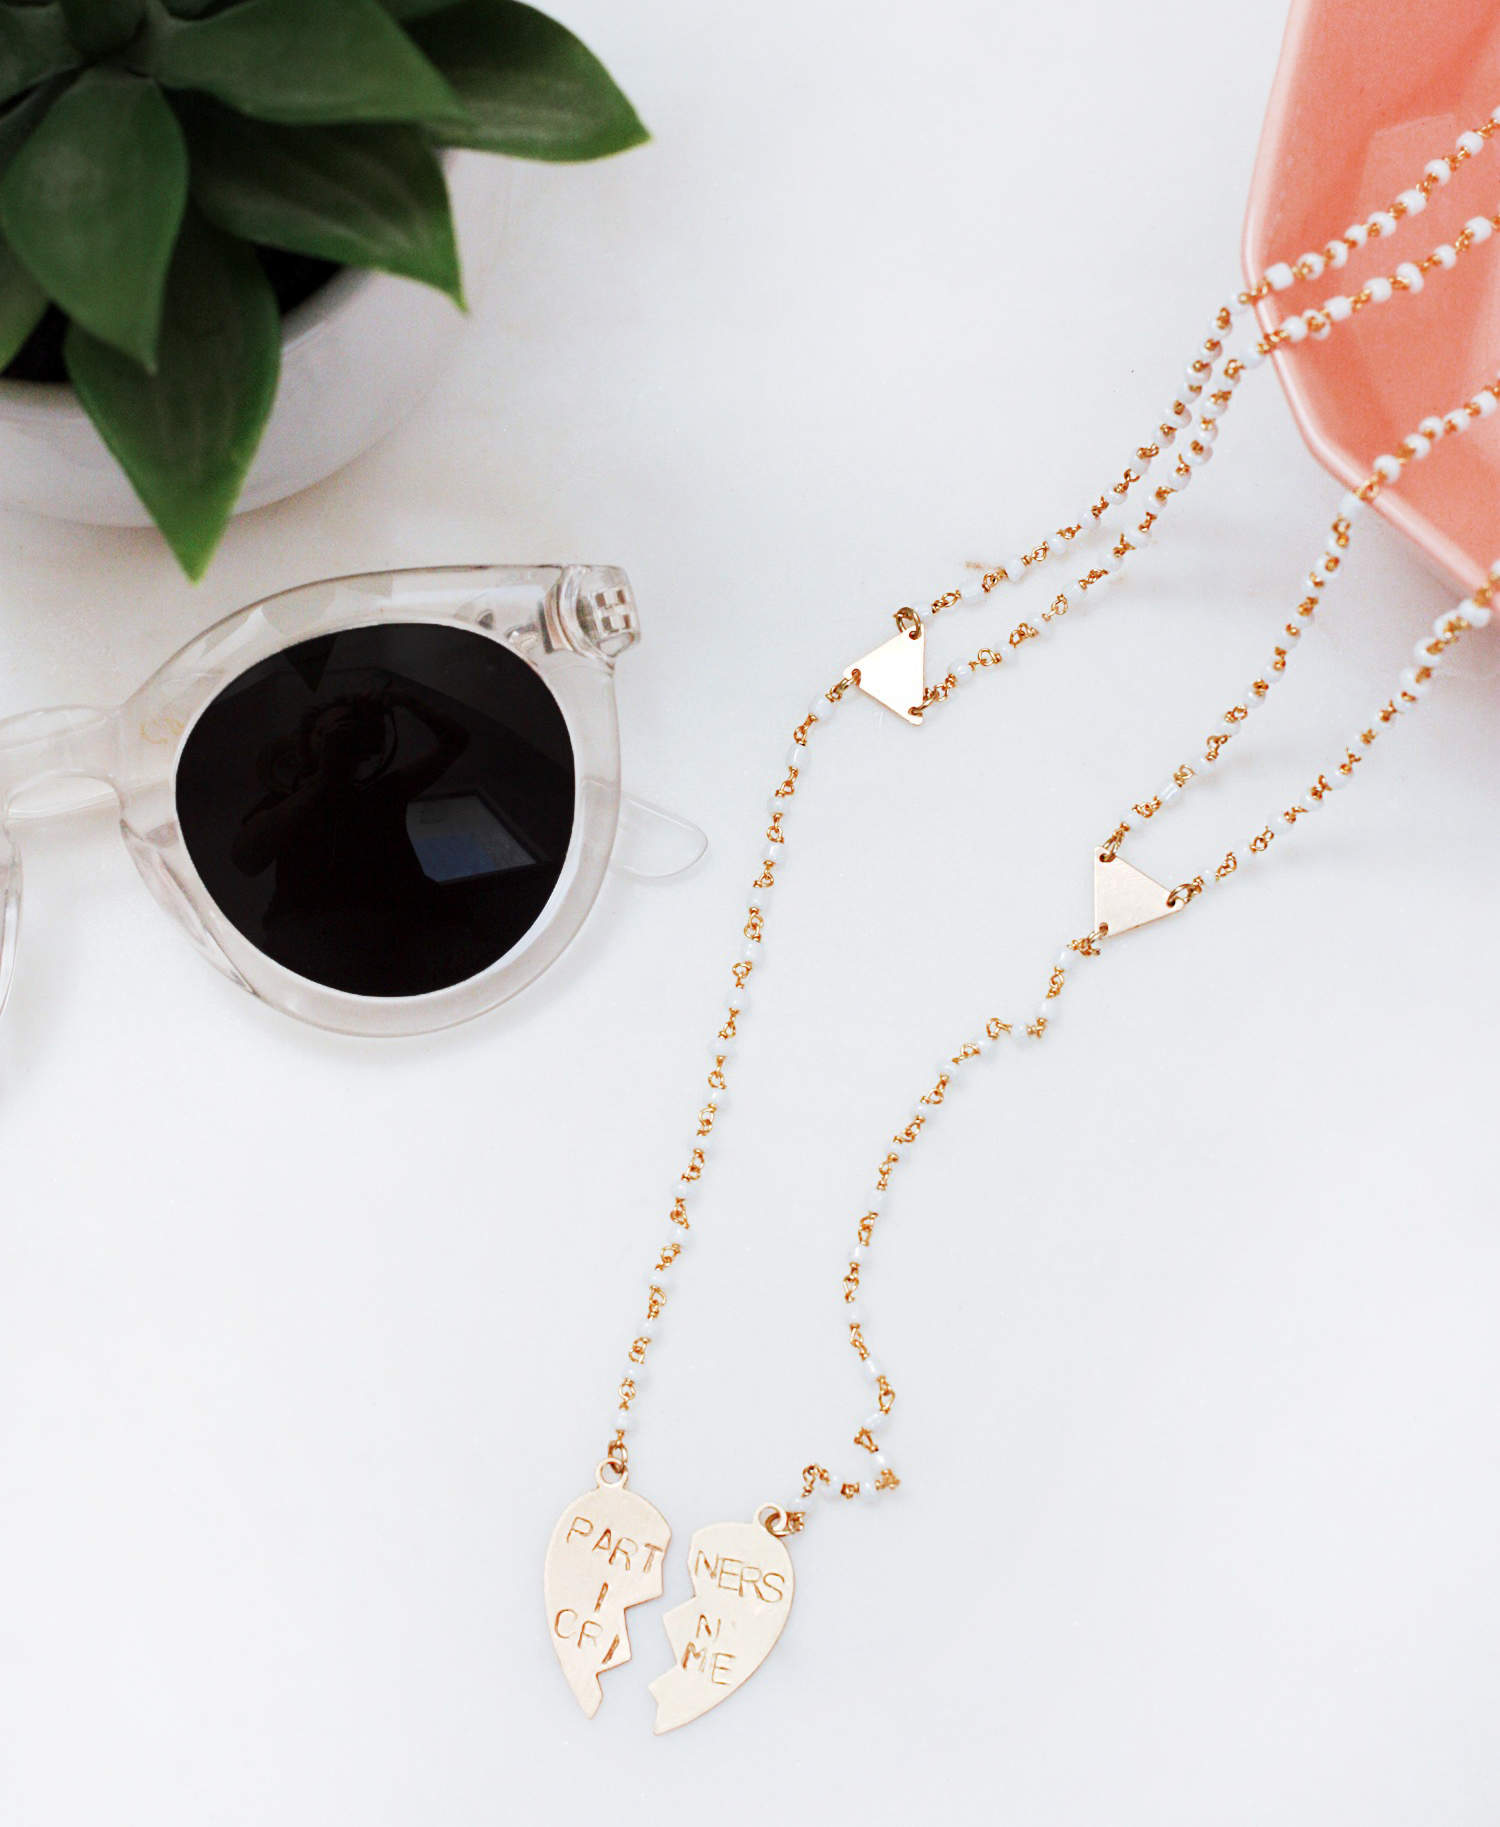 do jewelry p pdp necklaces women shopmadewell doityourself yourself nl necklace madewell kit enlarge it diy